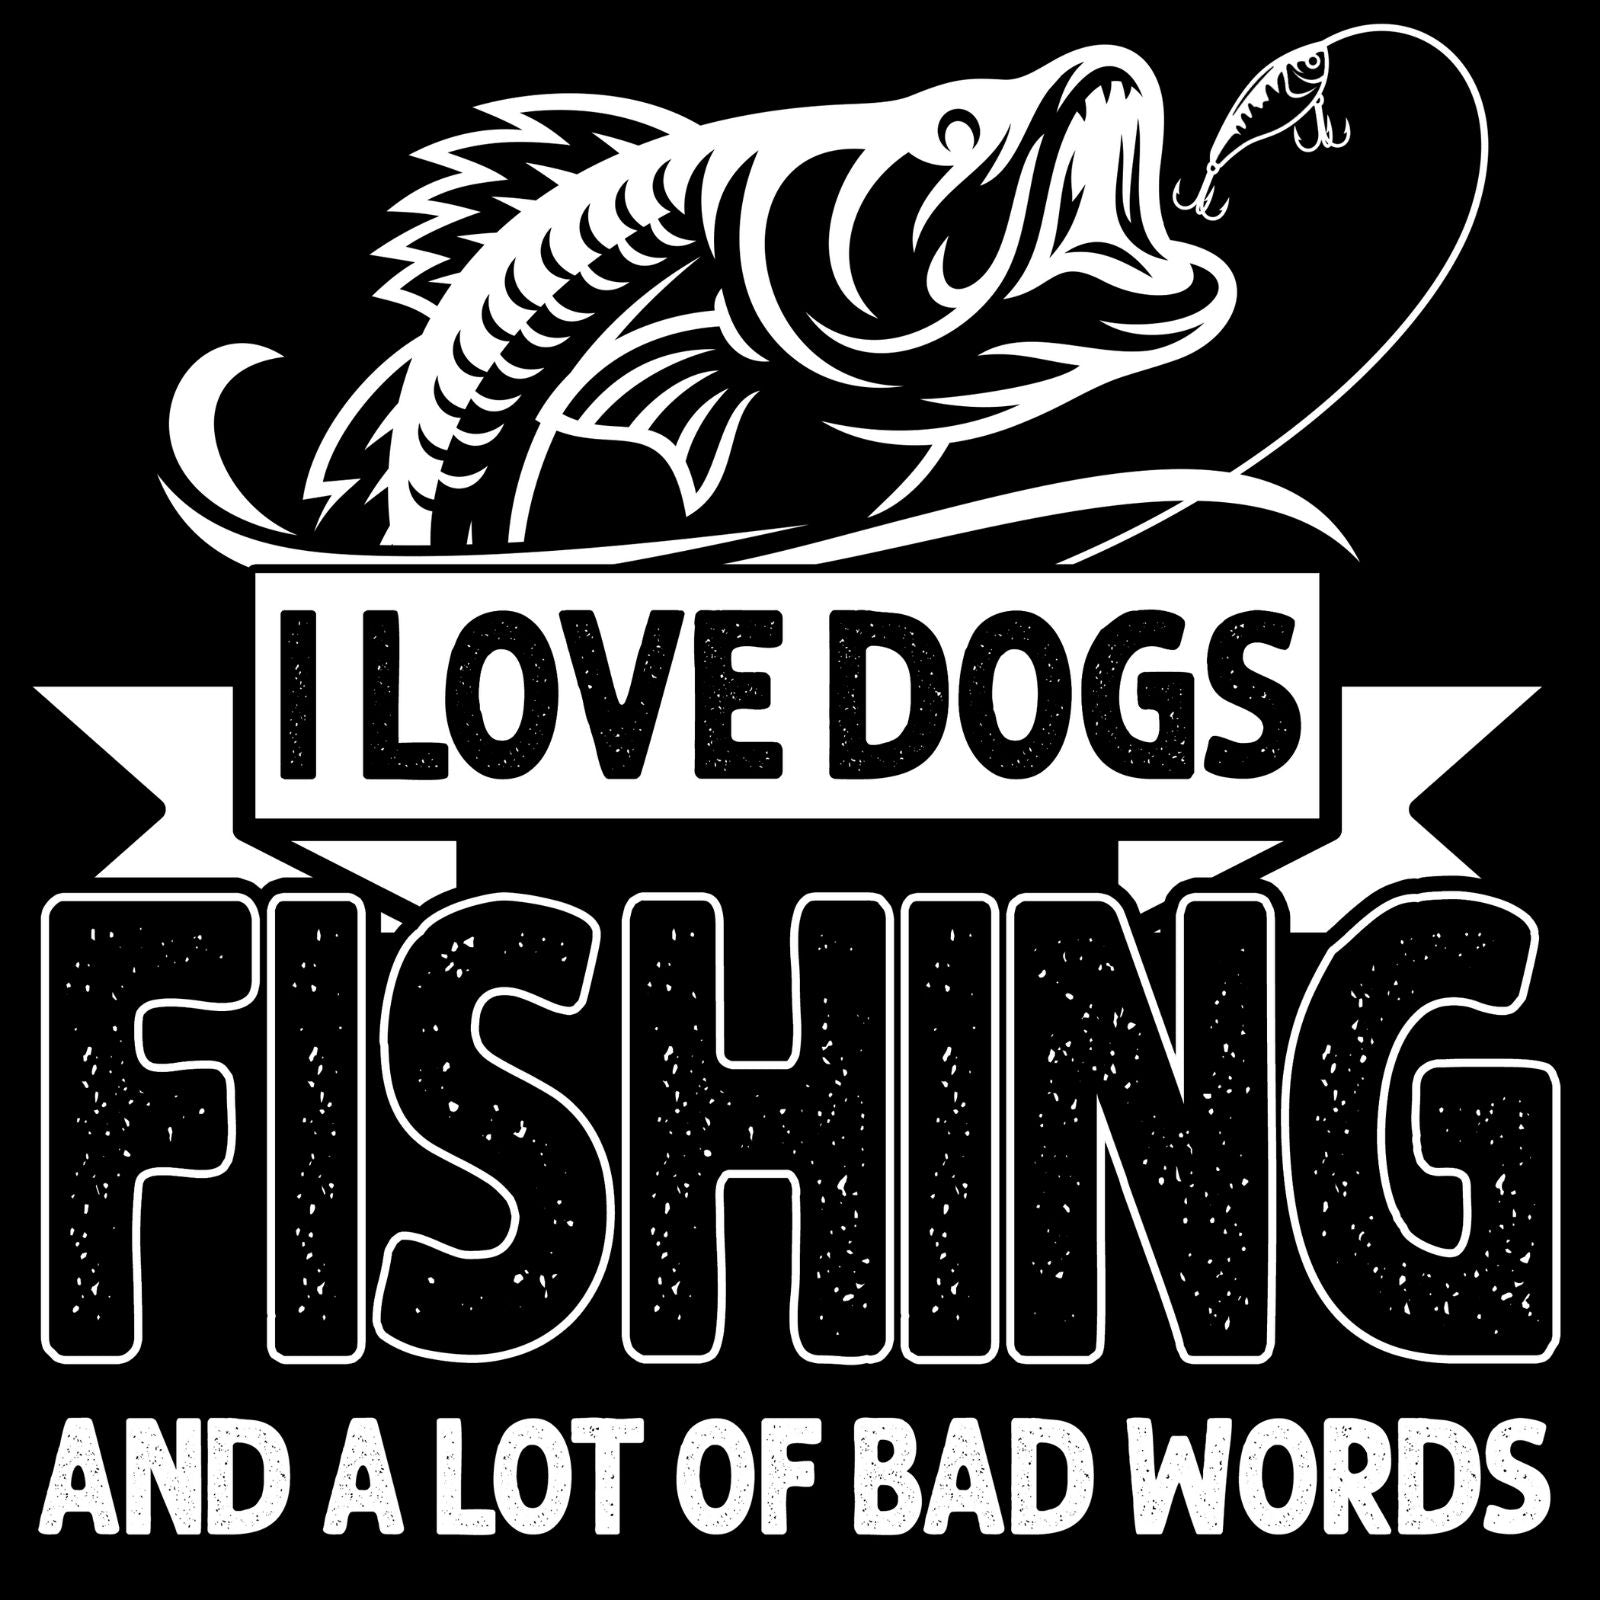 I Love Dogs, Fishing, And A Lot Of Bad Words - Bastard Graphics